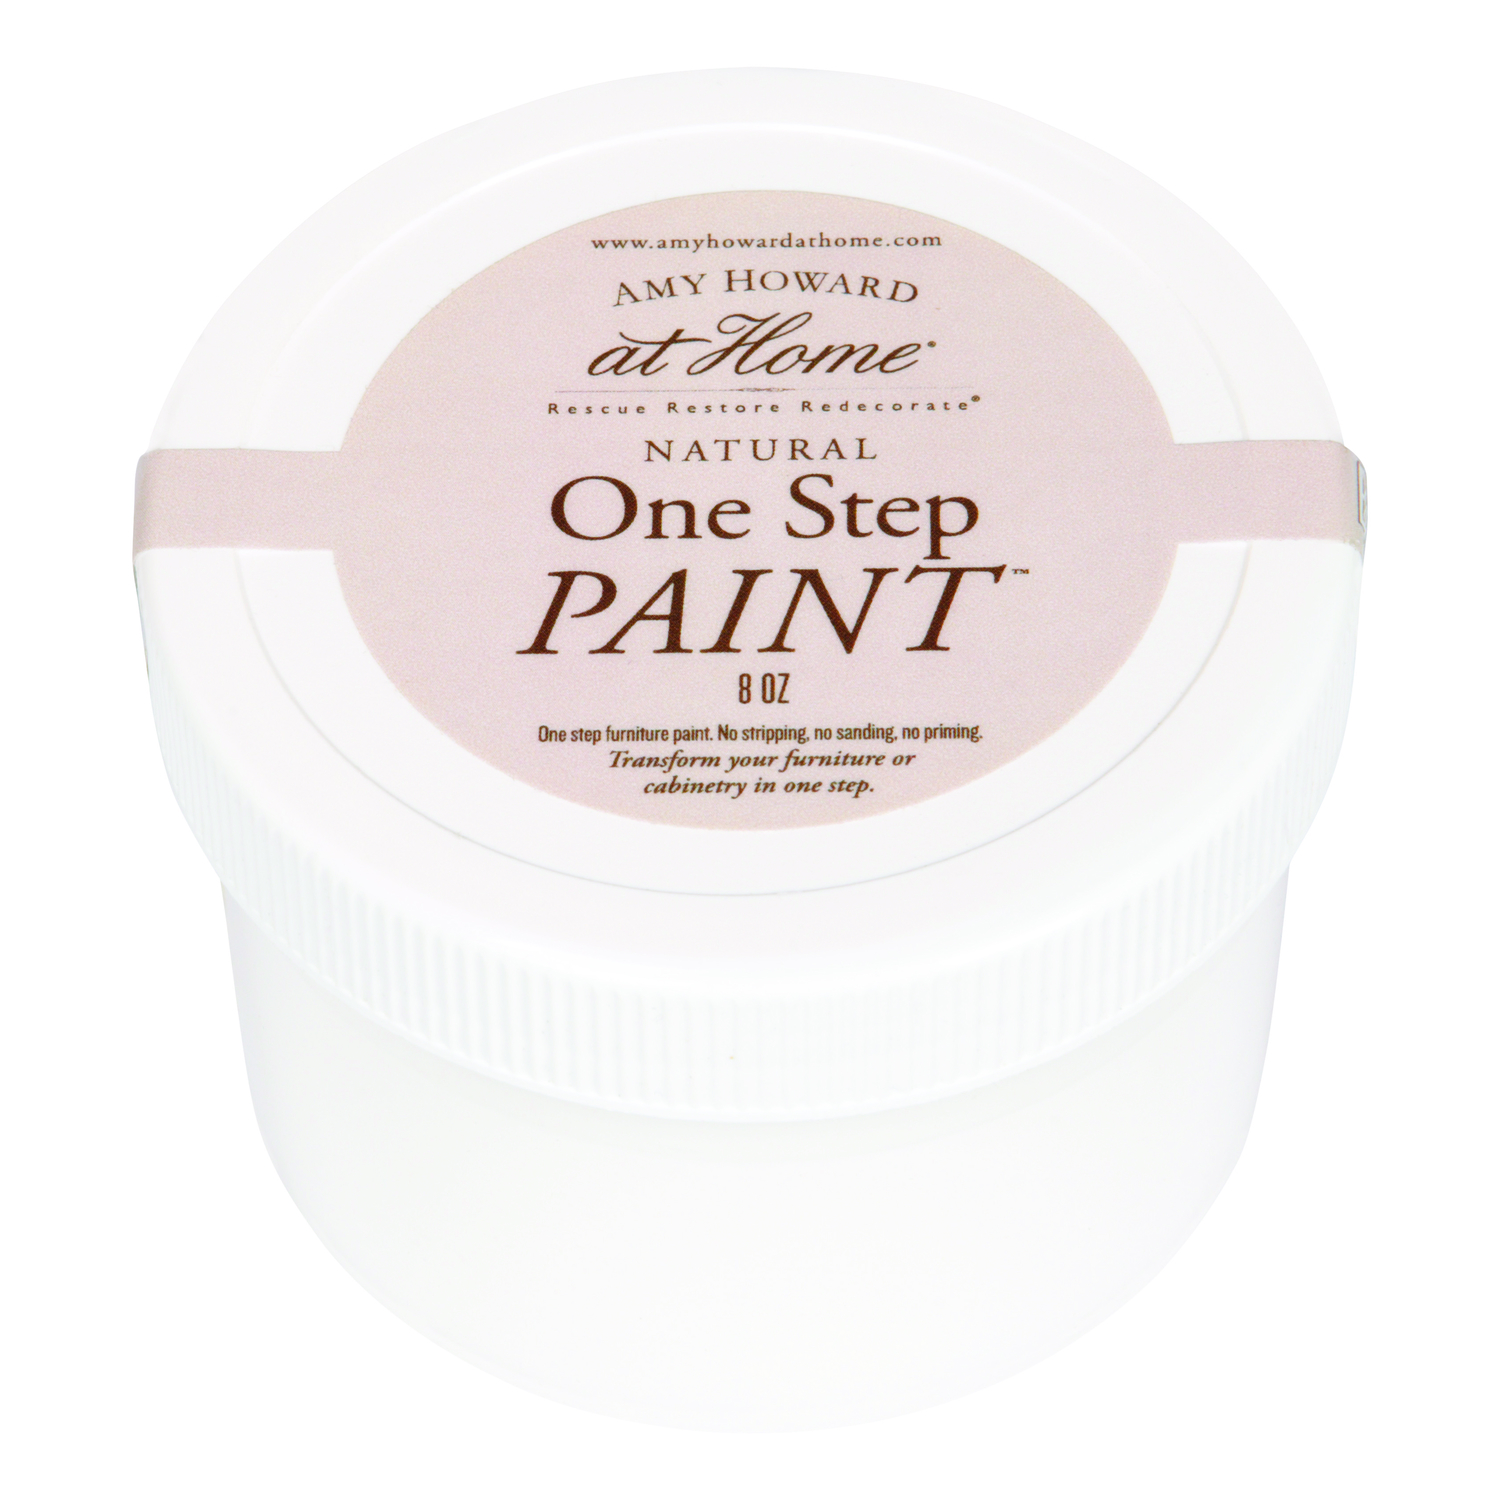 Amy Howard at Home  Flat Chalky Finish  8 oz. One Step Paint  Ballet White